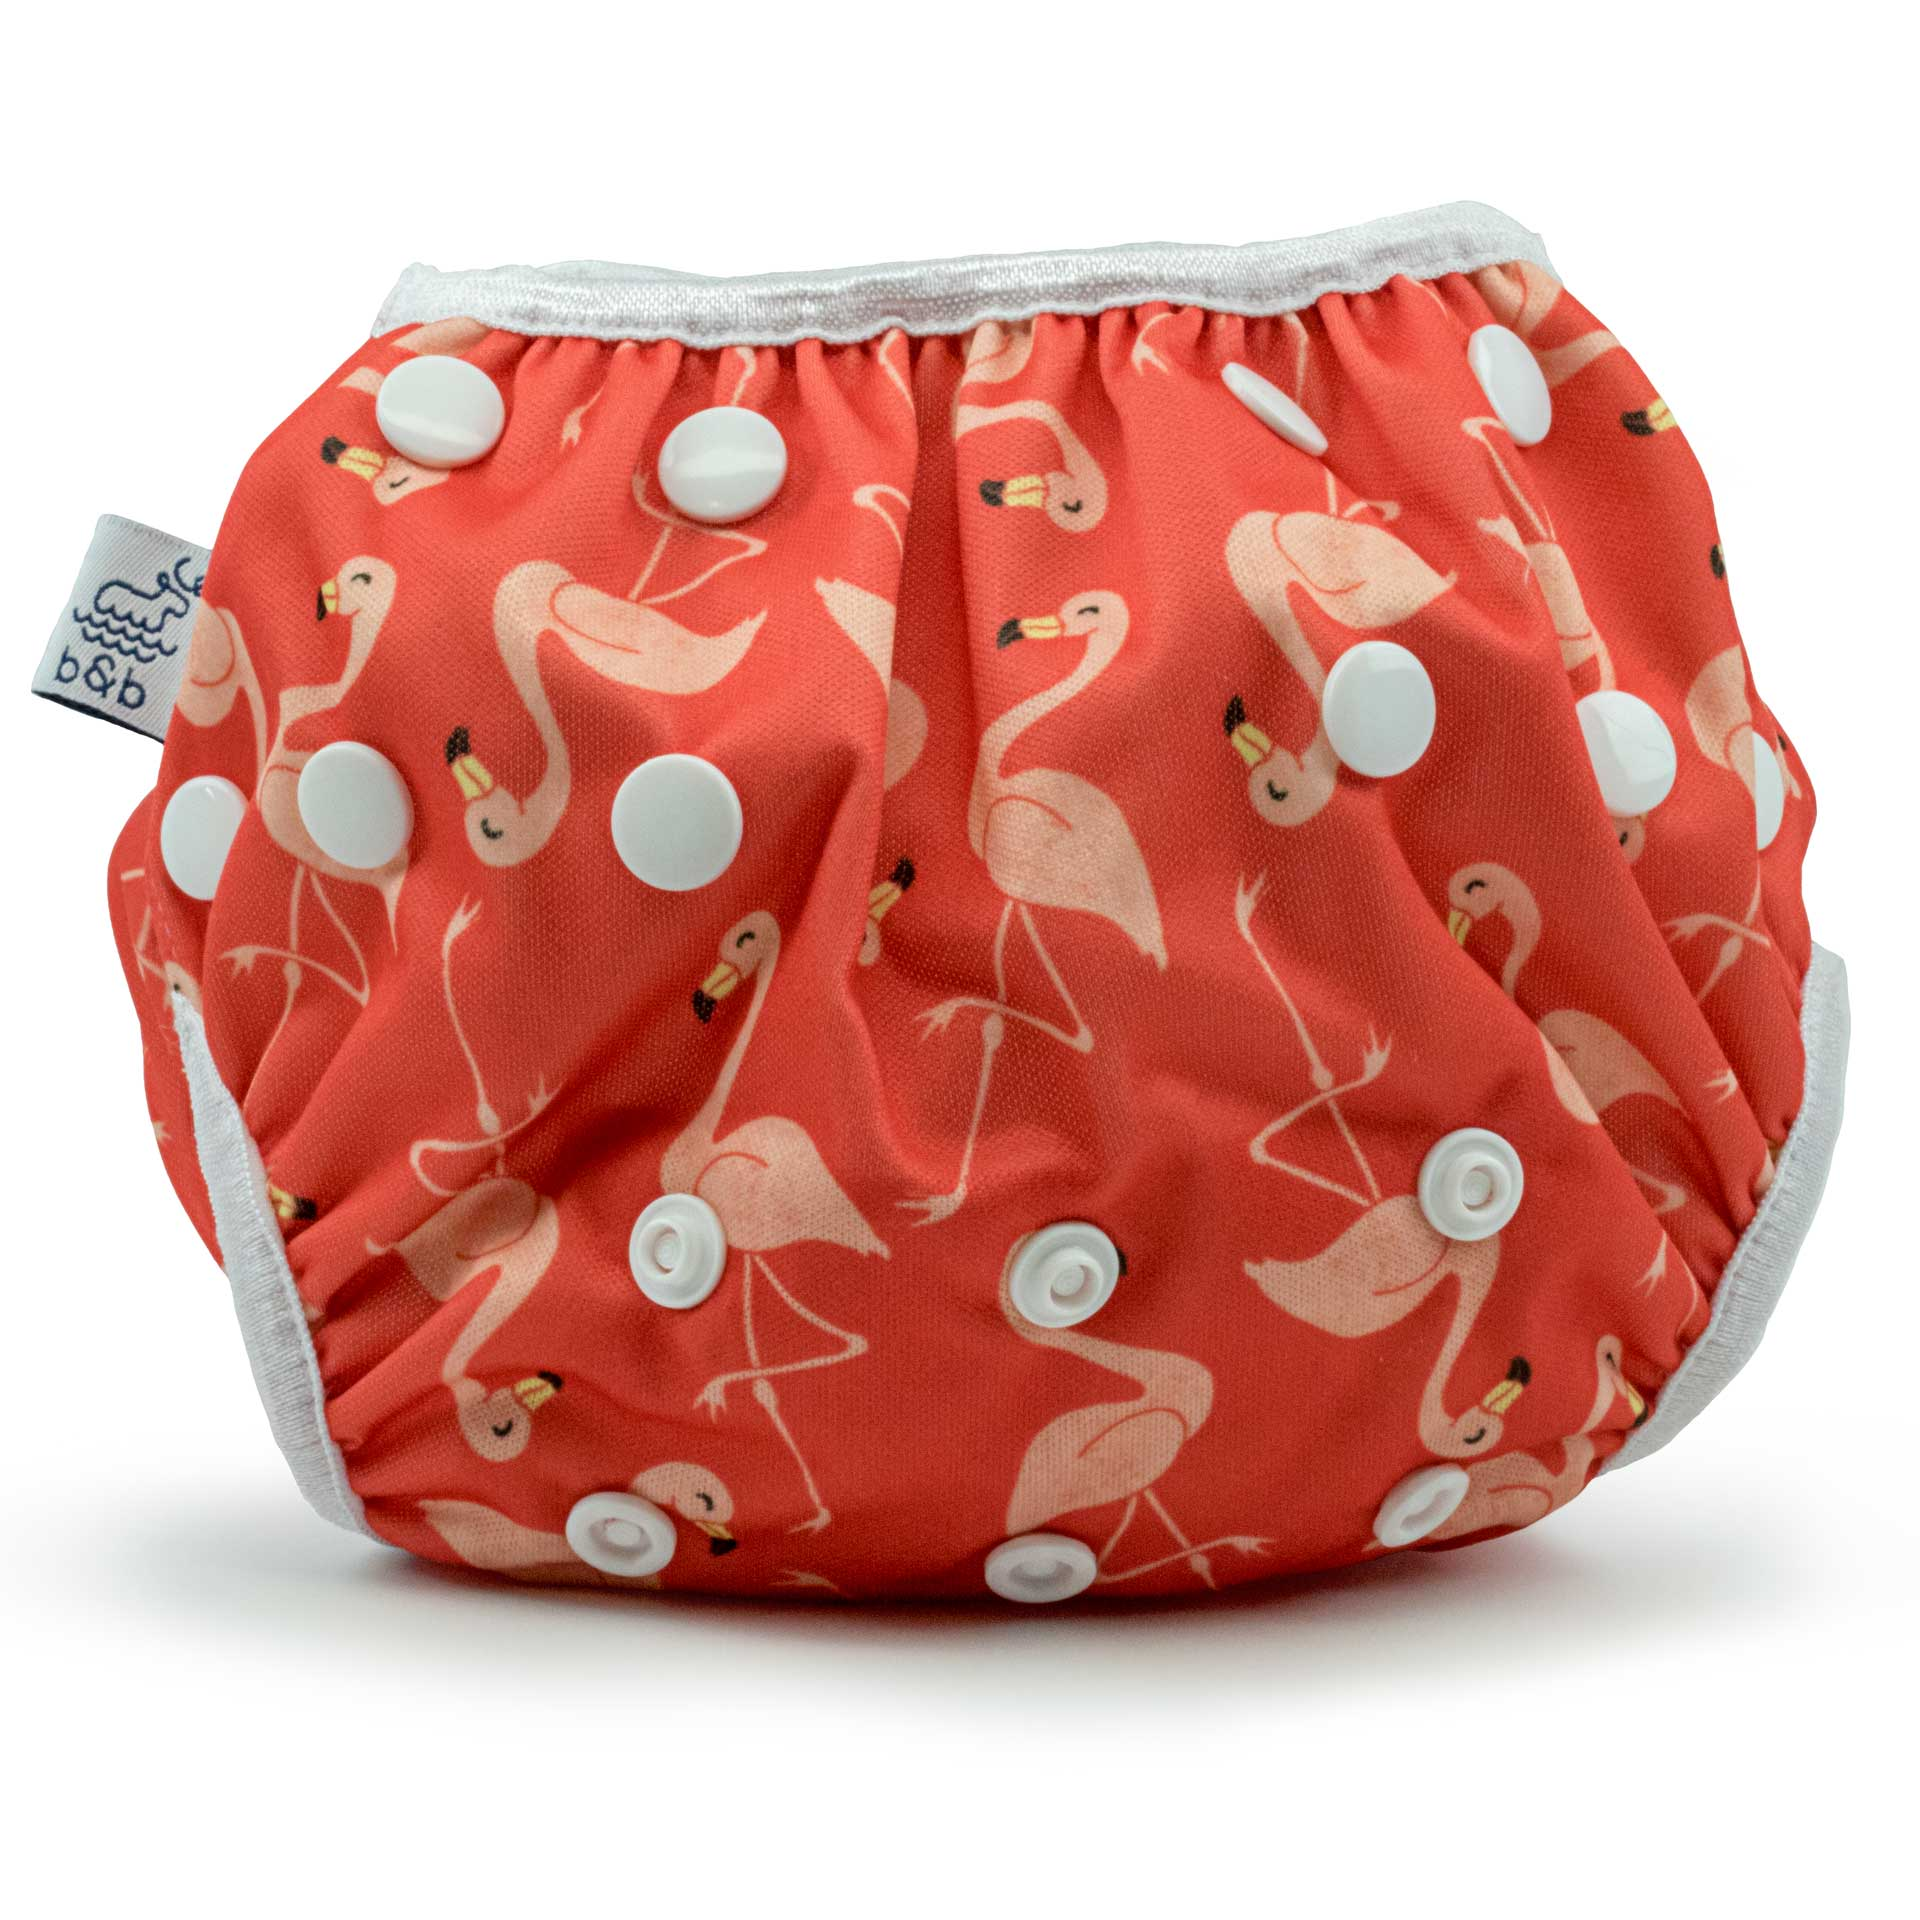 Beau and Belle Littles Swim Diaper, Regular Size, dark pink with light pink flamingos, front view